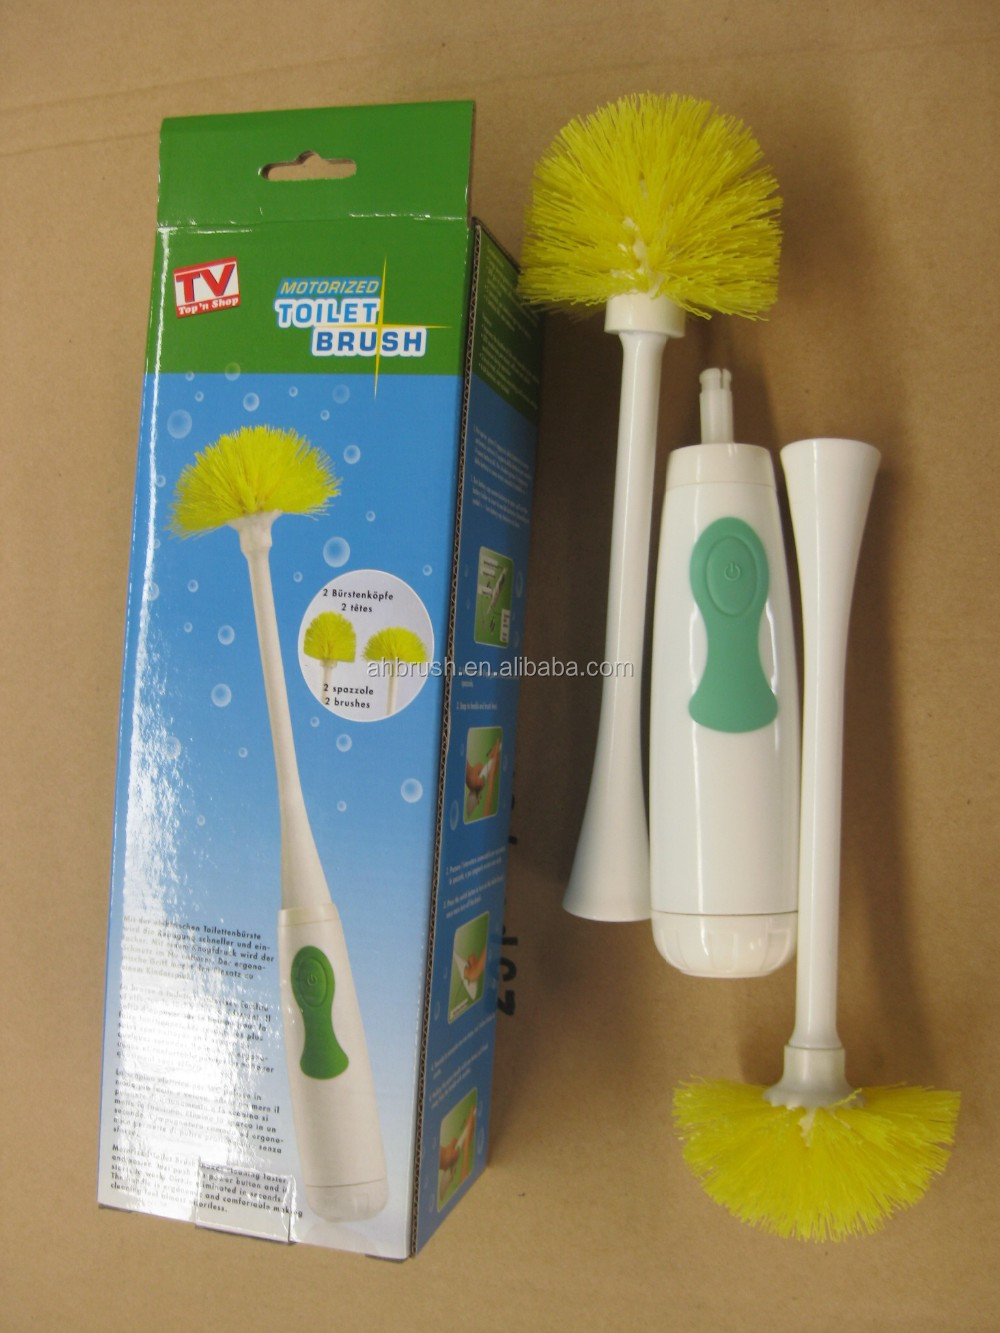 powered electric plastic toilet brush set